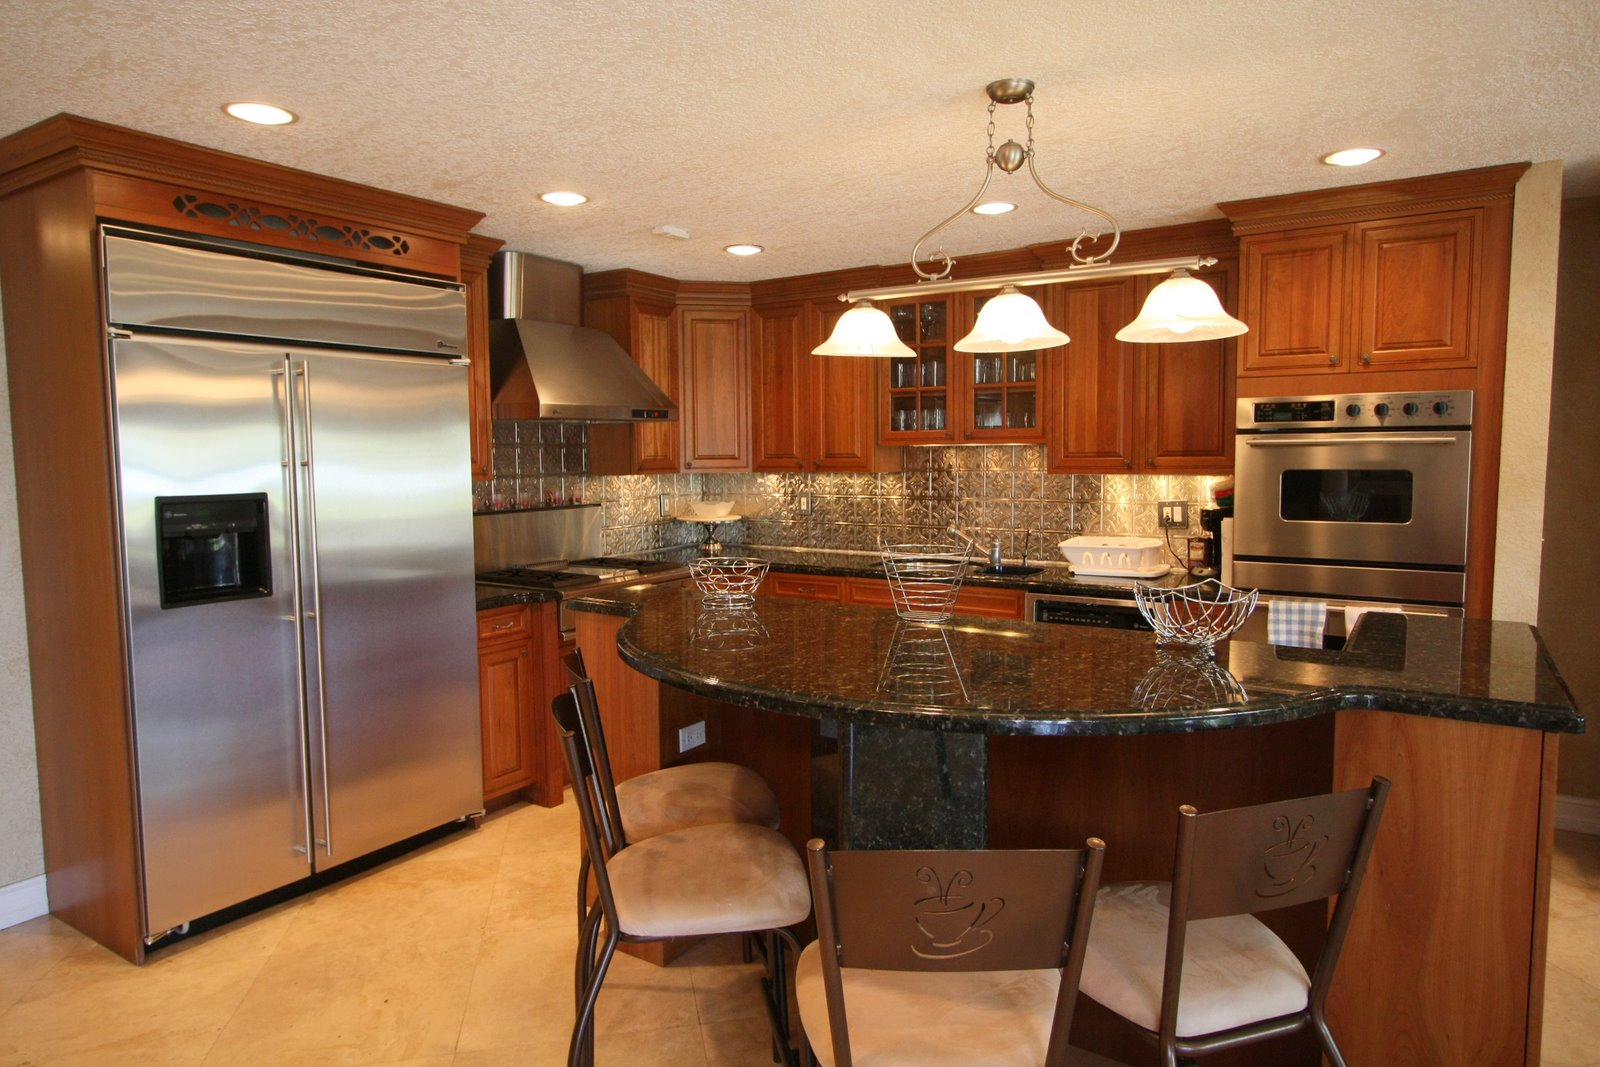 Kitchen remodeling ideas pictures photos for Small kitchen remodeling ideas home renovation